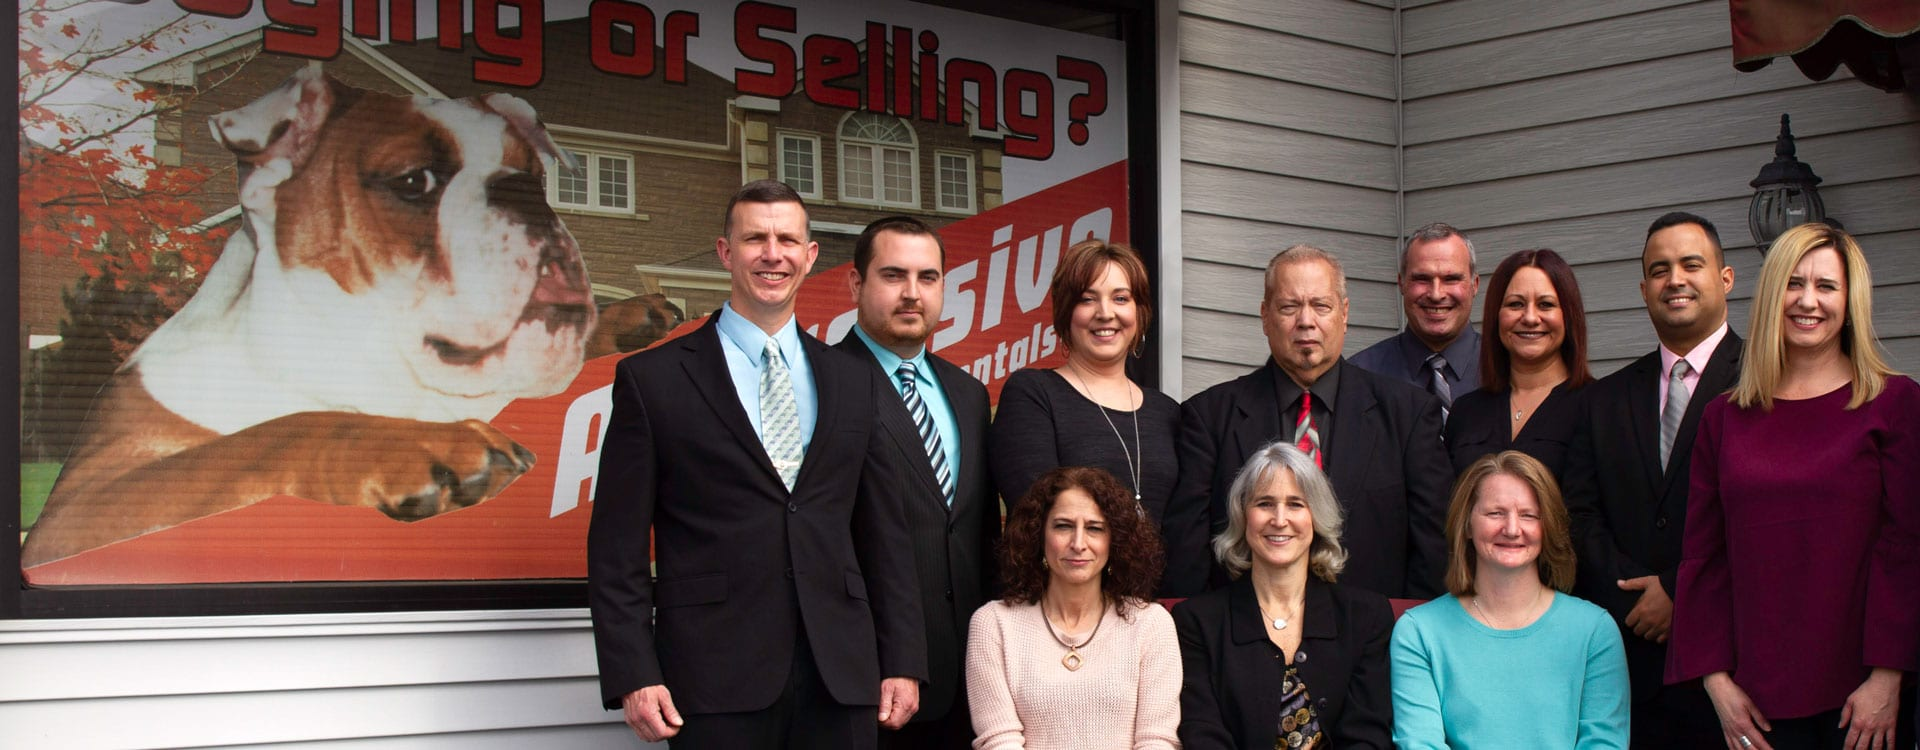 Group photo of the staff at Aggressive Realty